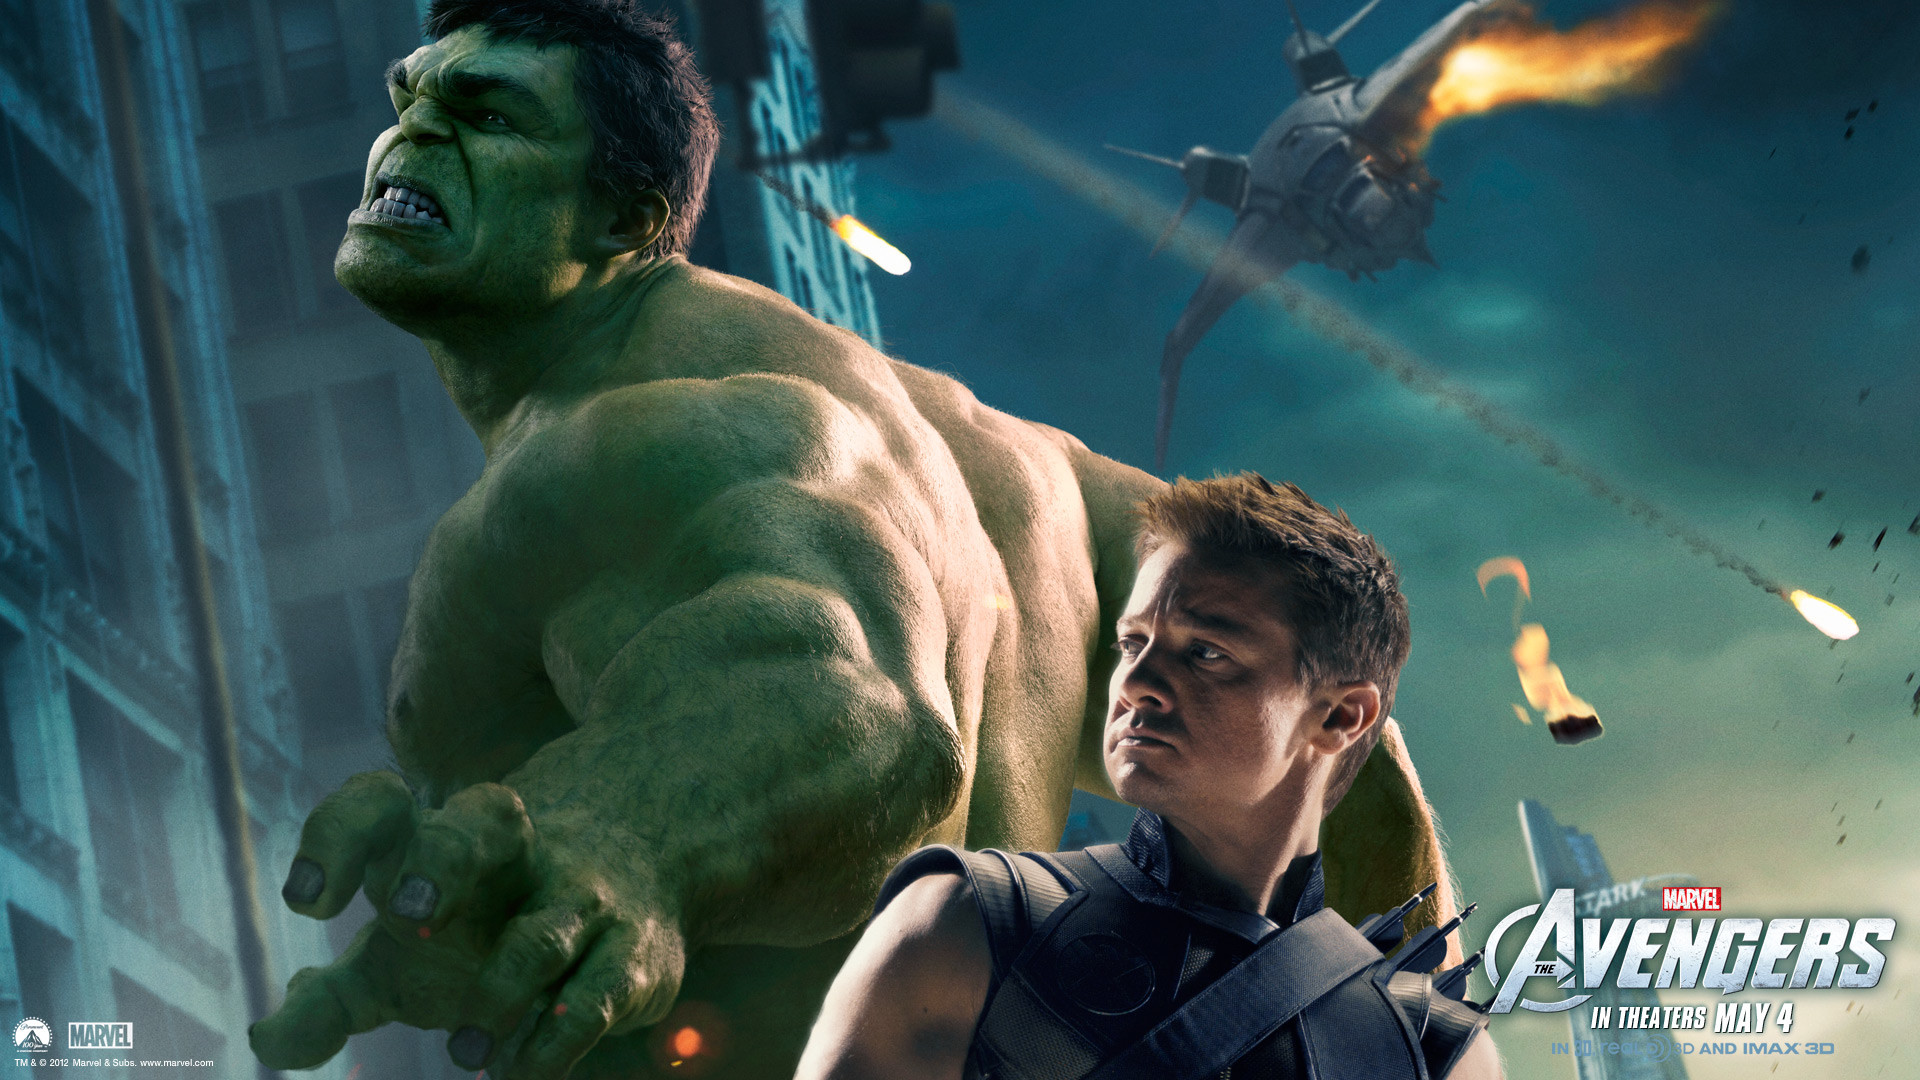 Avengers hd wallpapers 1080p 80 images - Hulk hd images free download ...